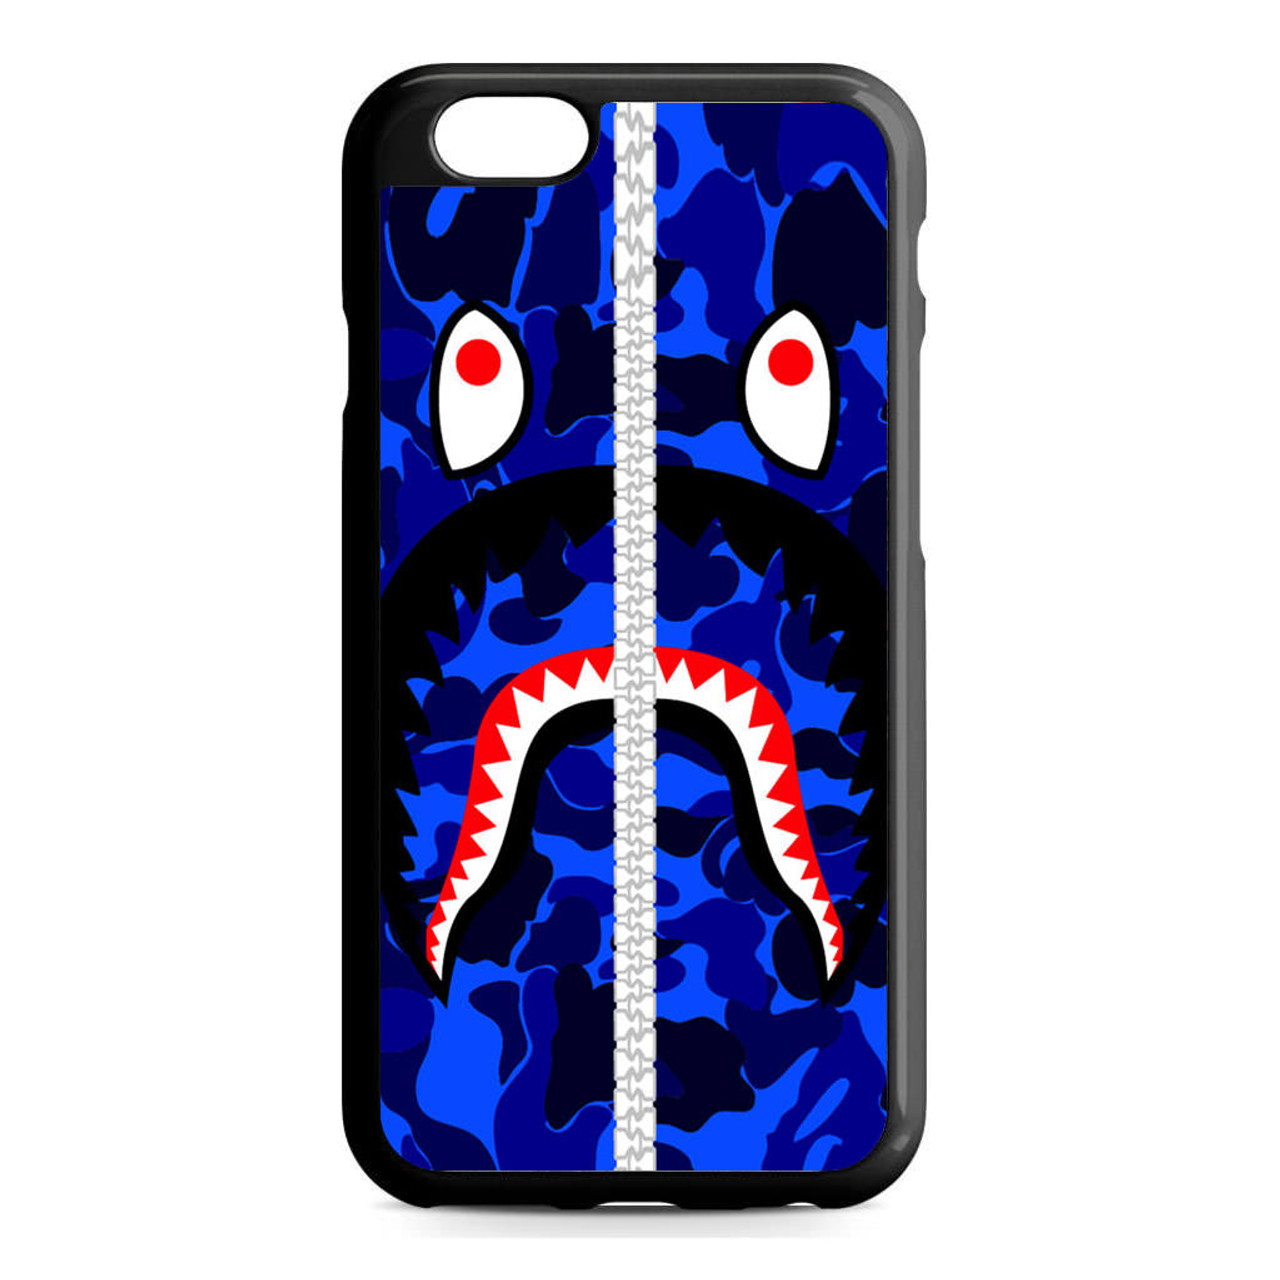 quality design 63ad1 bc029 Bape Shark iPhone 6/6S Case